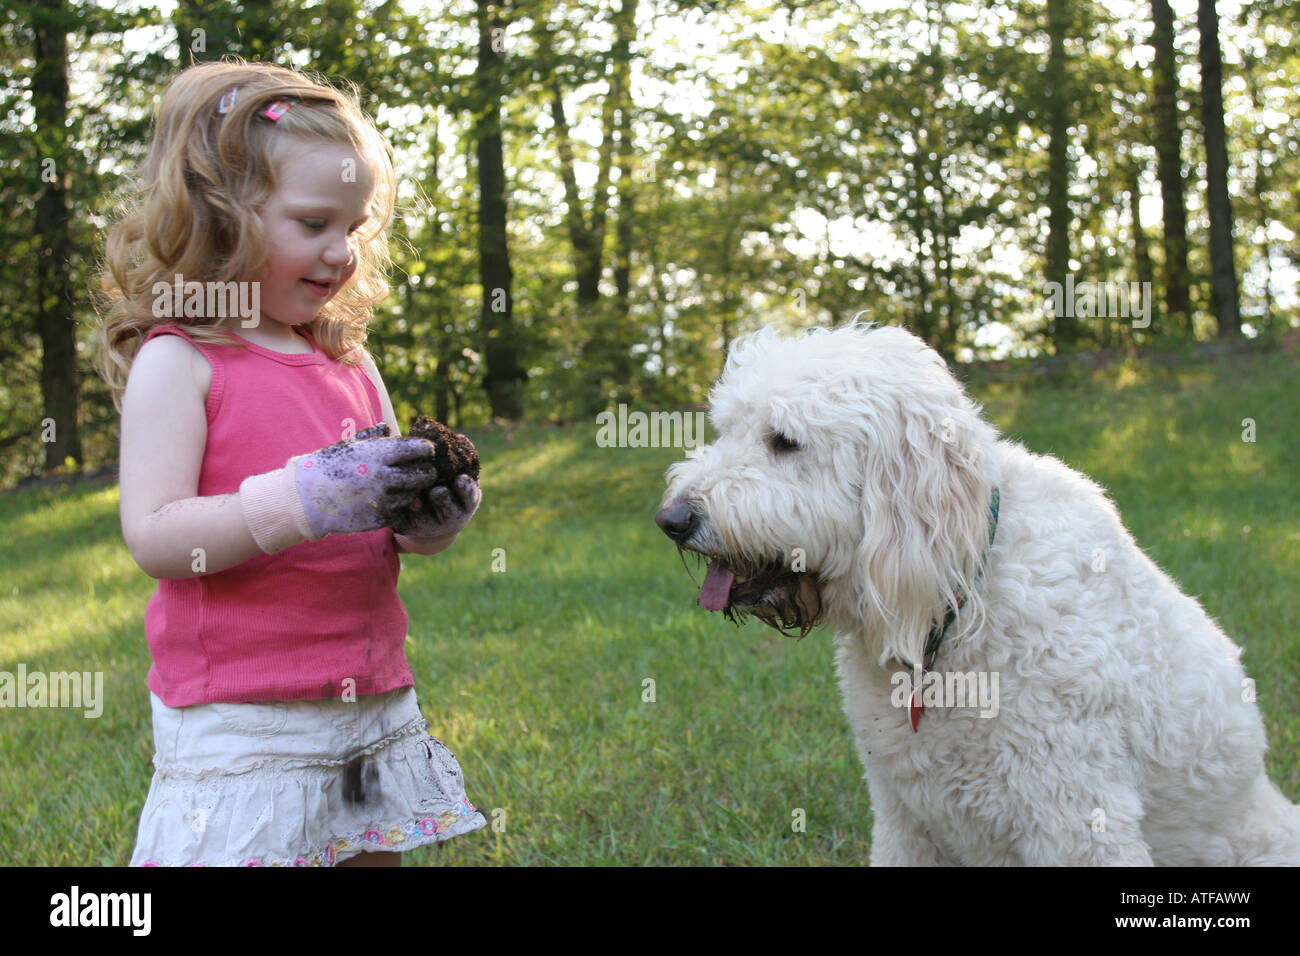 Two year olds enjoy messy play especially with willing friends like 3 year old Goldendoddle - Stock Image